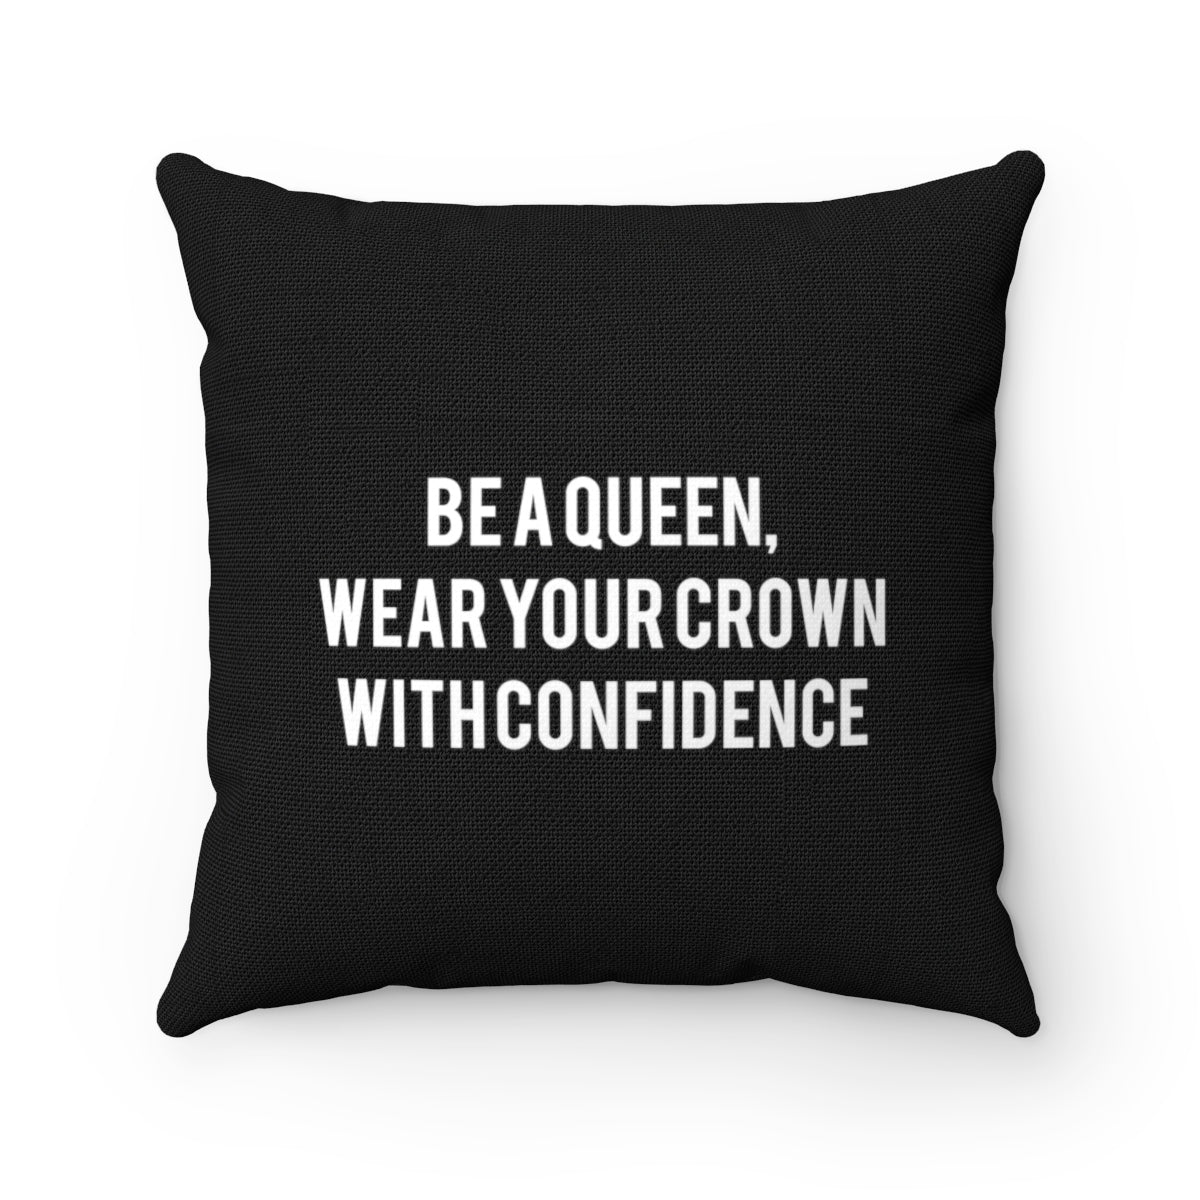 Be A Queen, wear your crown with confidence